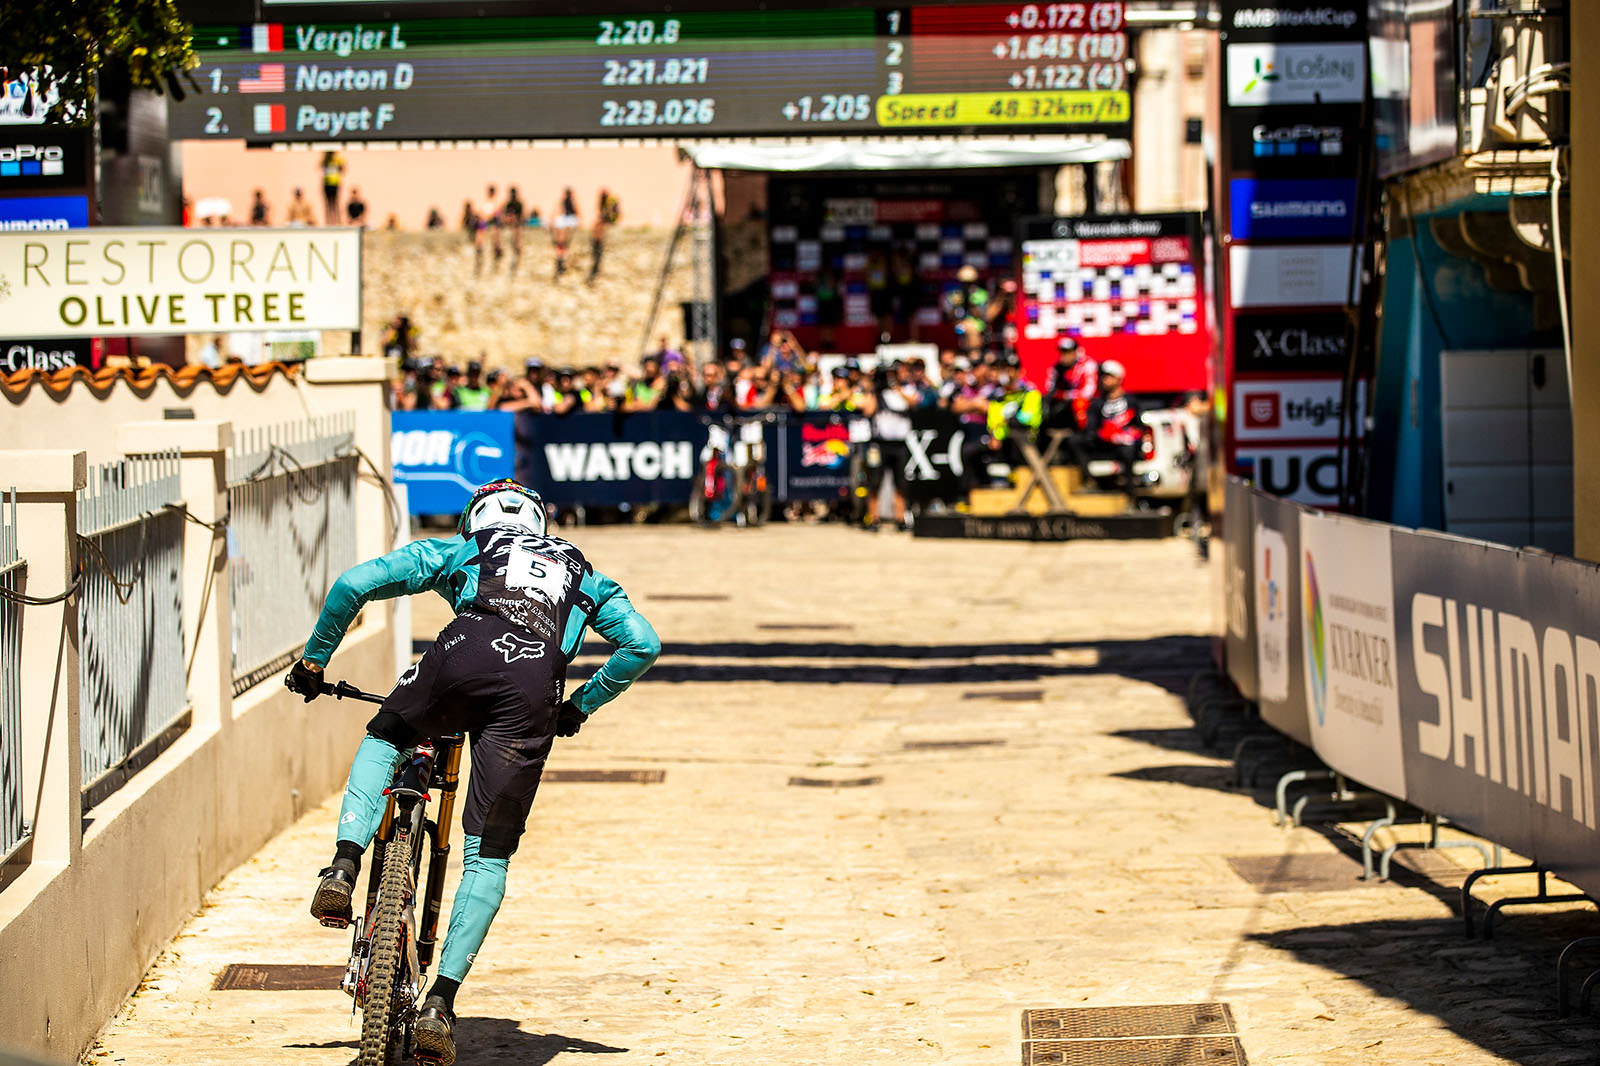 Santa Cruz Bicycles - Loris Vergier Sprinting to the Finish at the Losinj World Cup DH